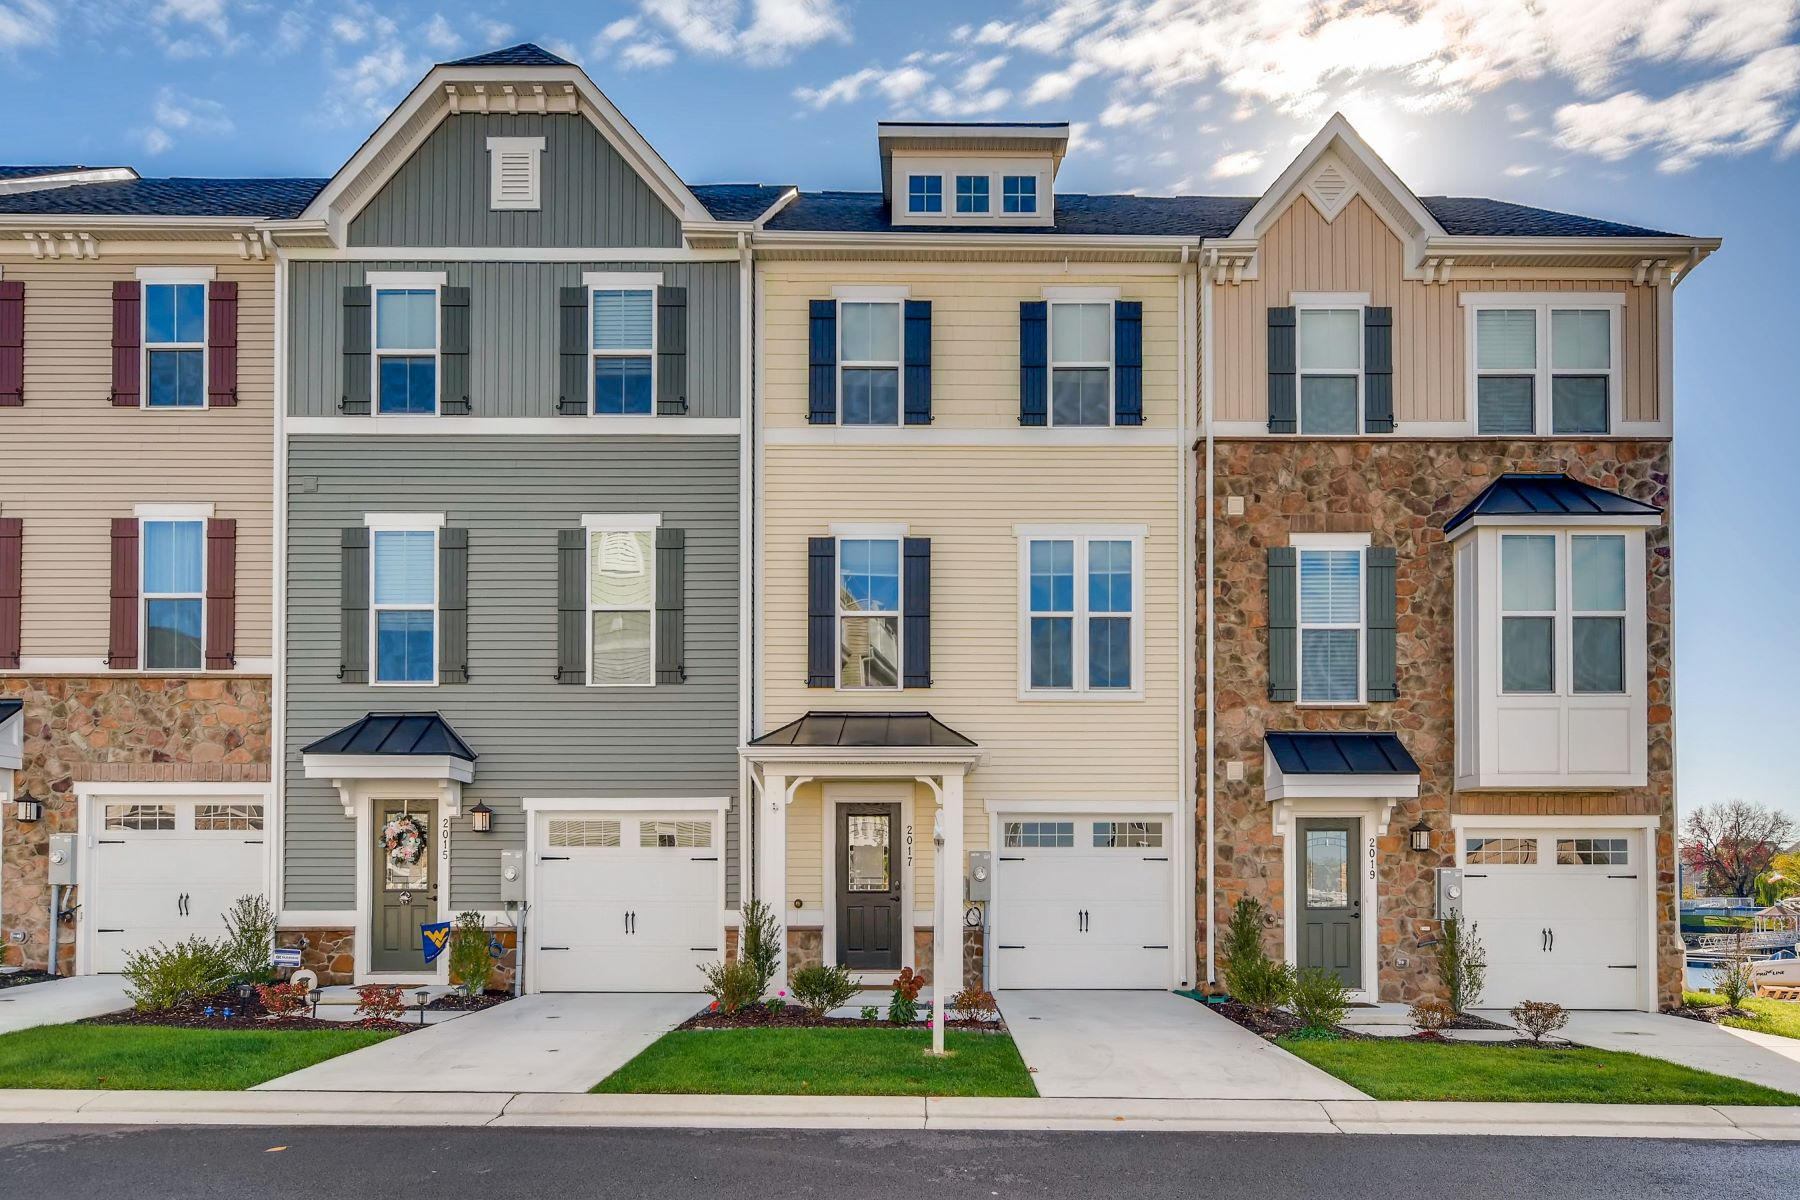 townhouses pour l Vente à Sheltered Harbor 2017 Jetty Drive, Dundalk, Maryland 21222 États-Unis